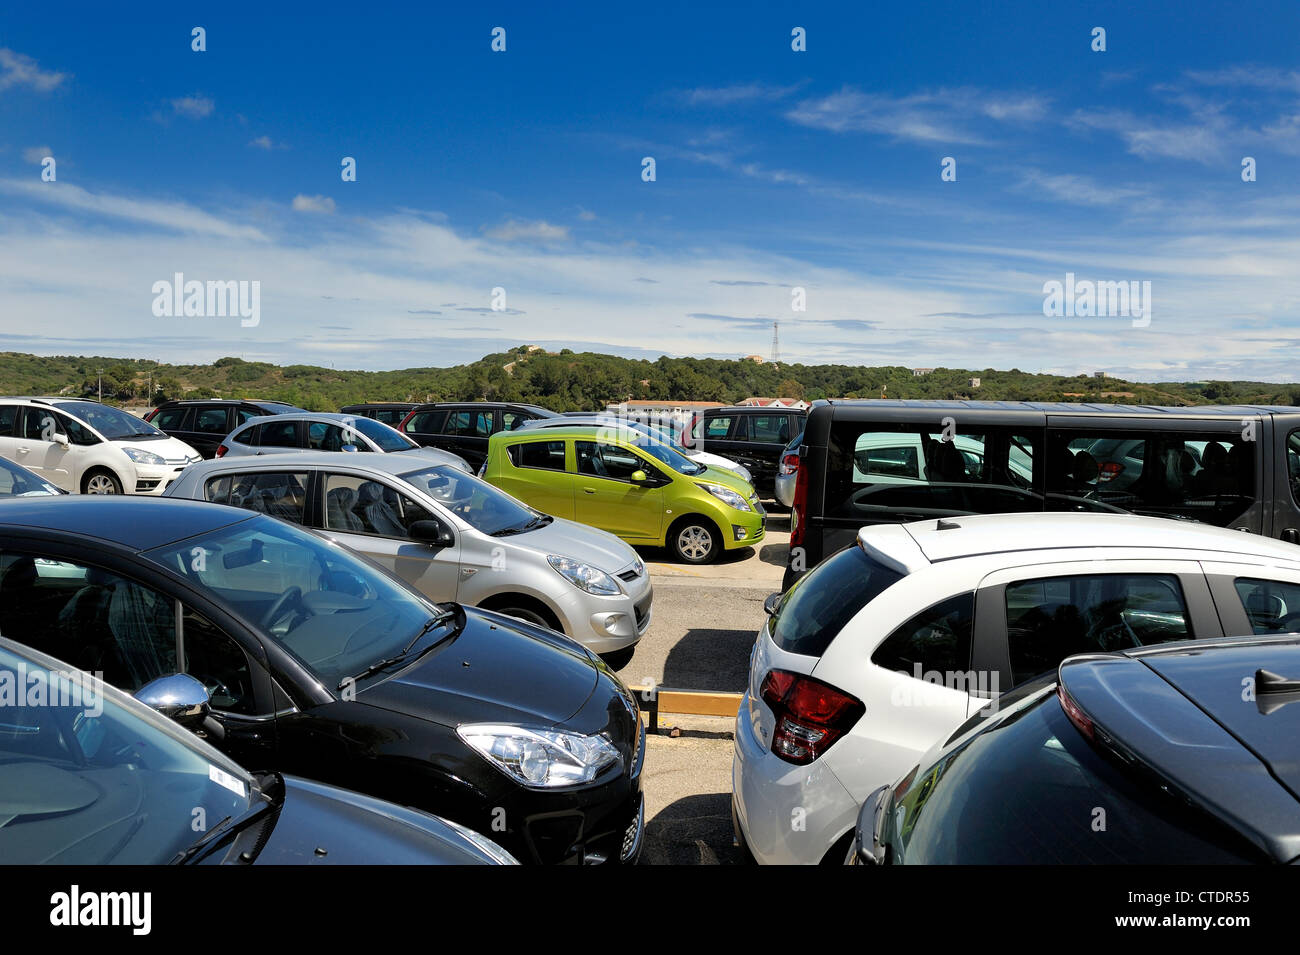 new cars in the harbour mahon menorca spain - Stock Image